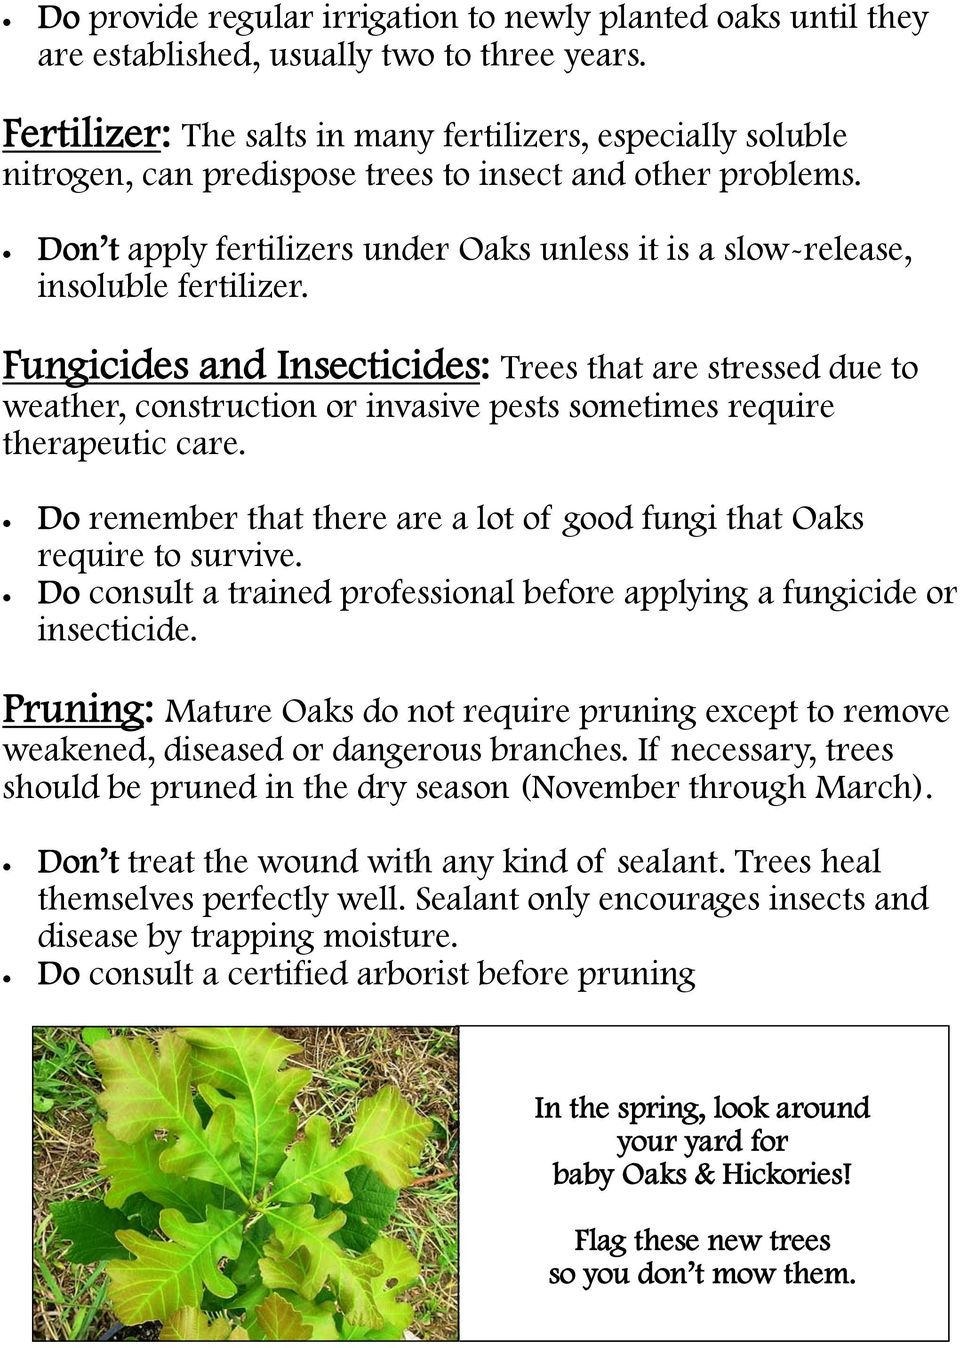 Don t apply fertilizers under Oaks unless it is a slow-release, insoluble fertilizer.